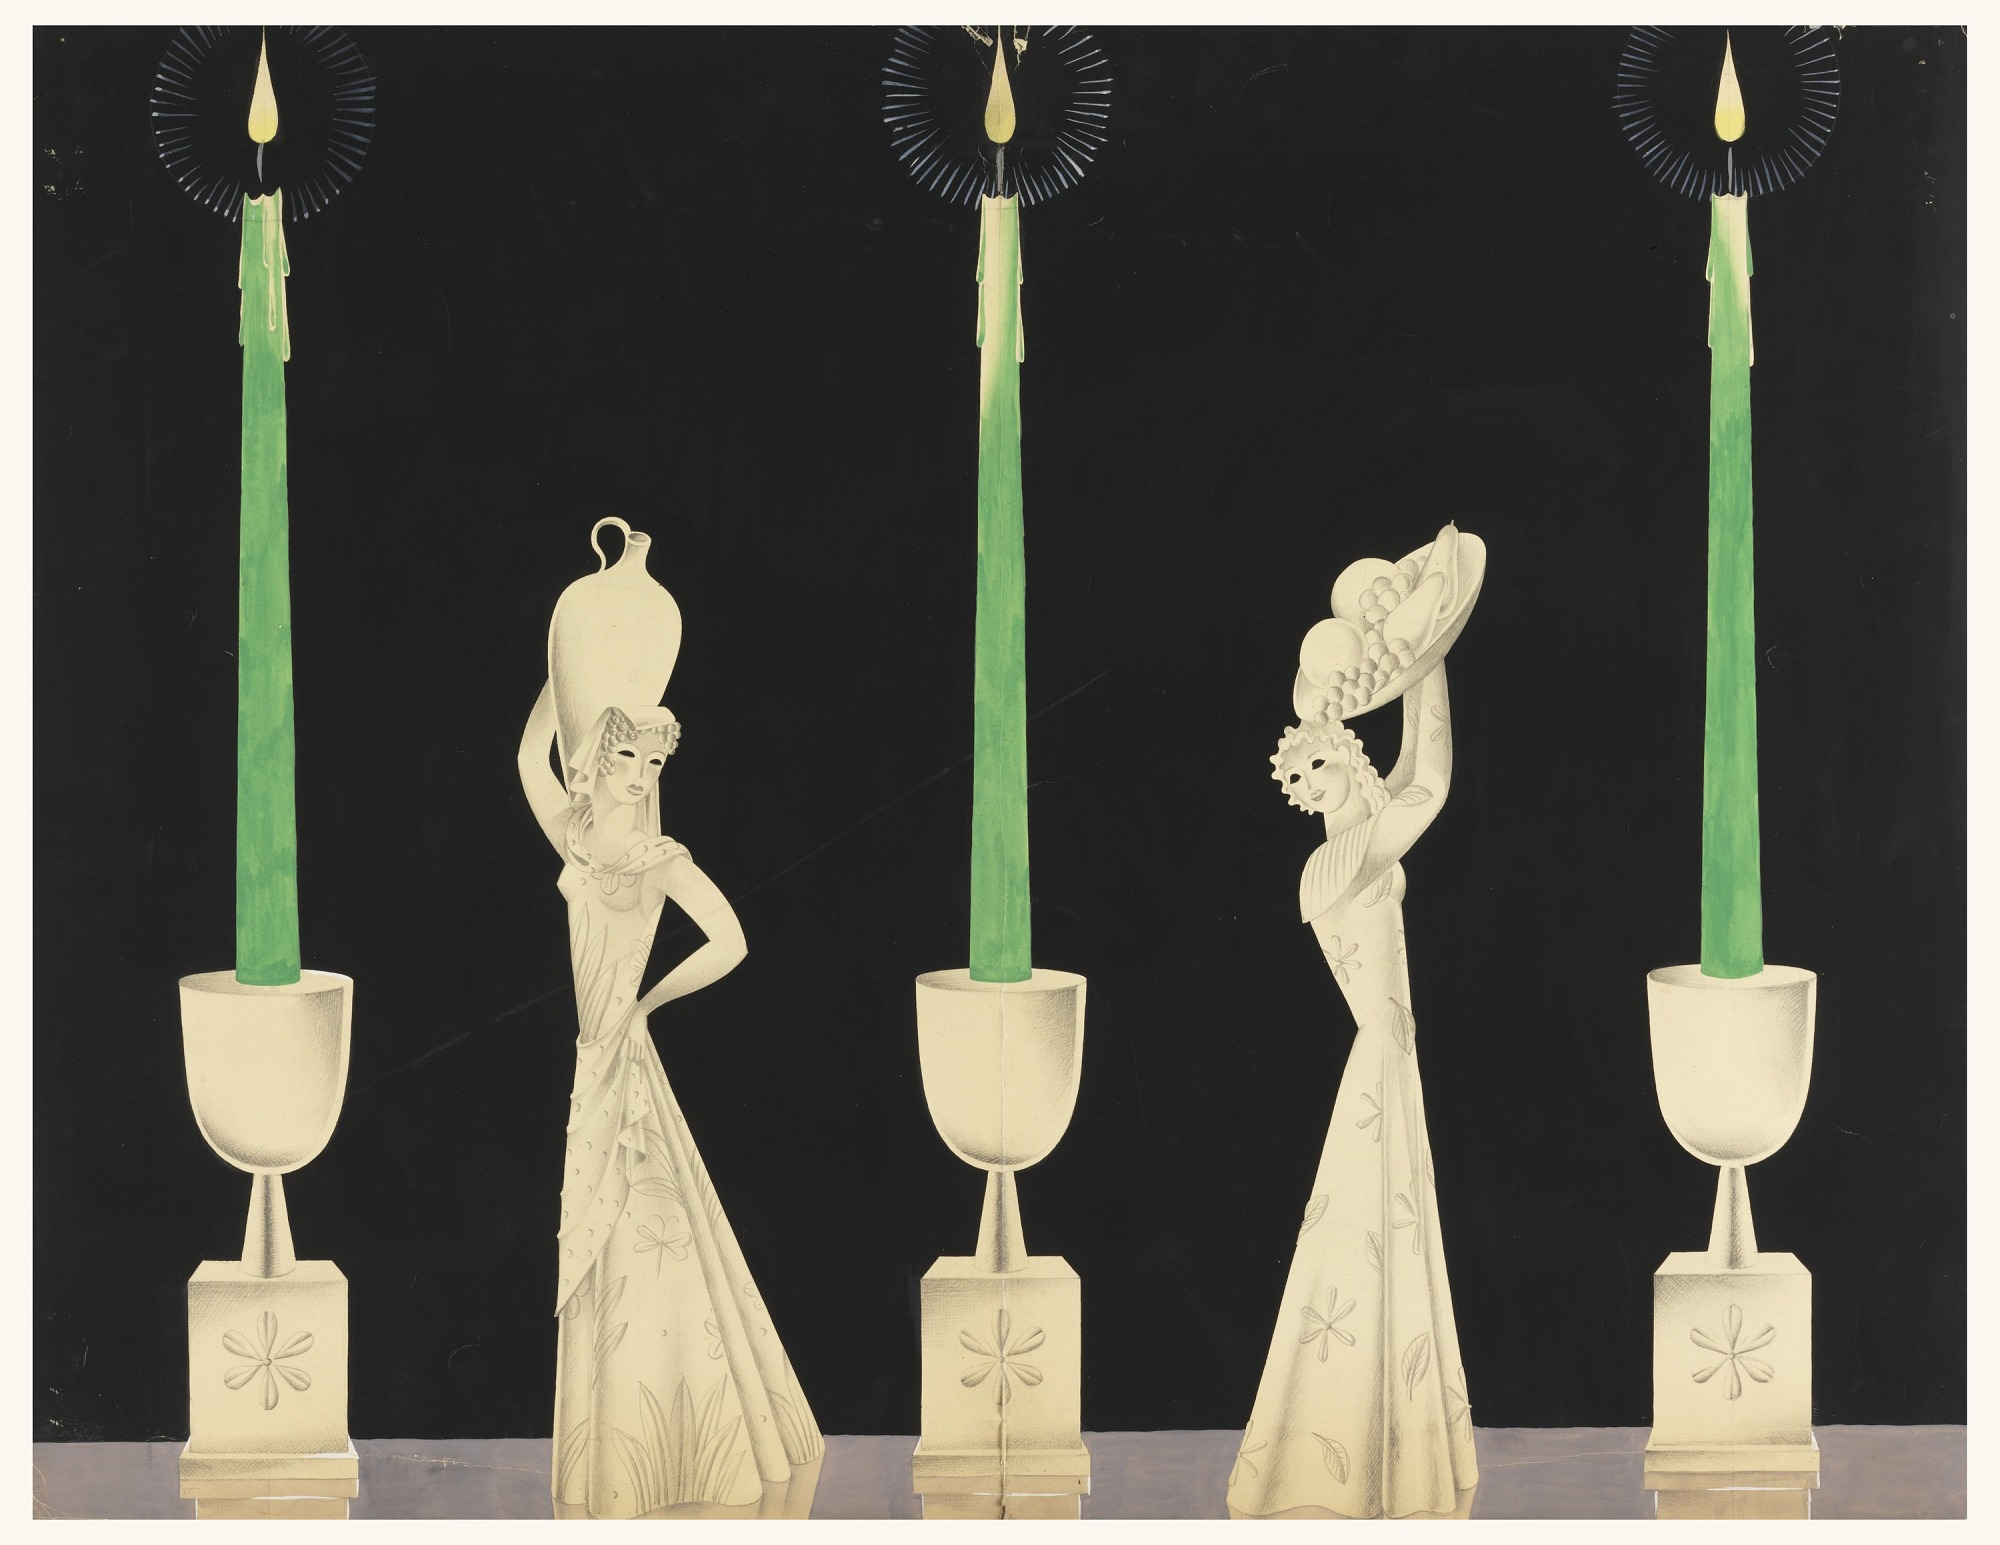 Design for Candlesticks with Figurines